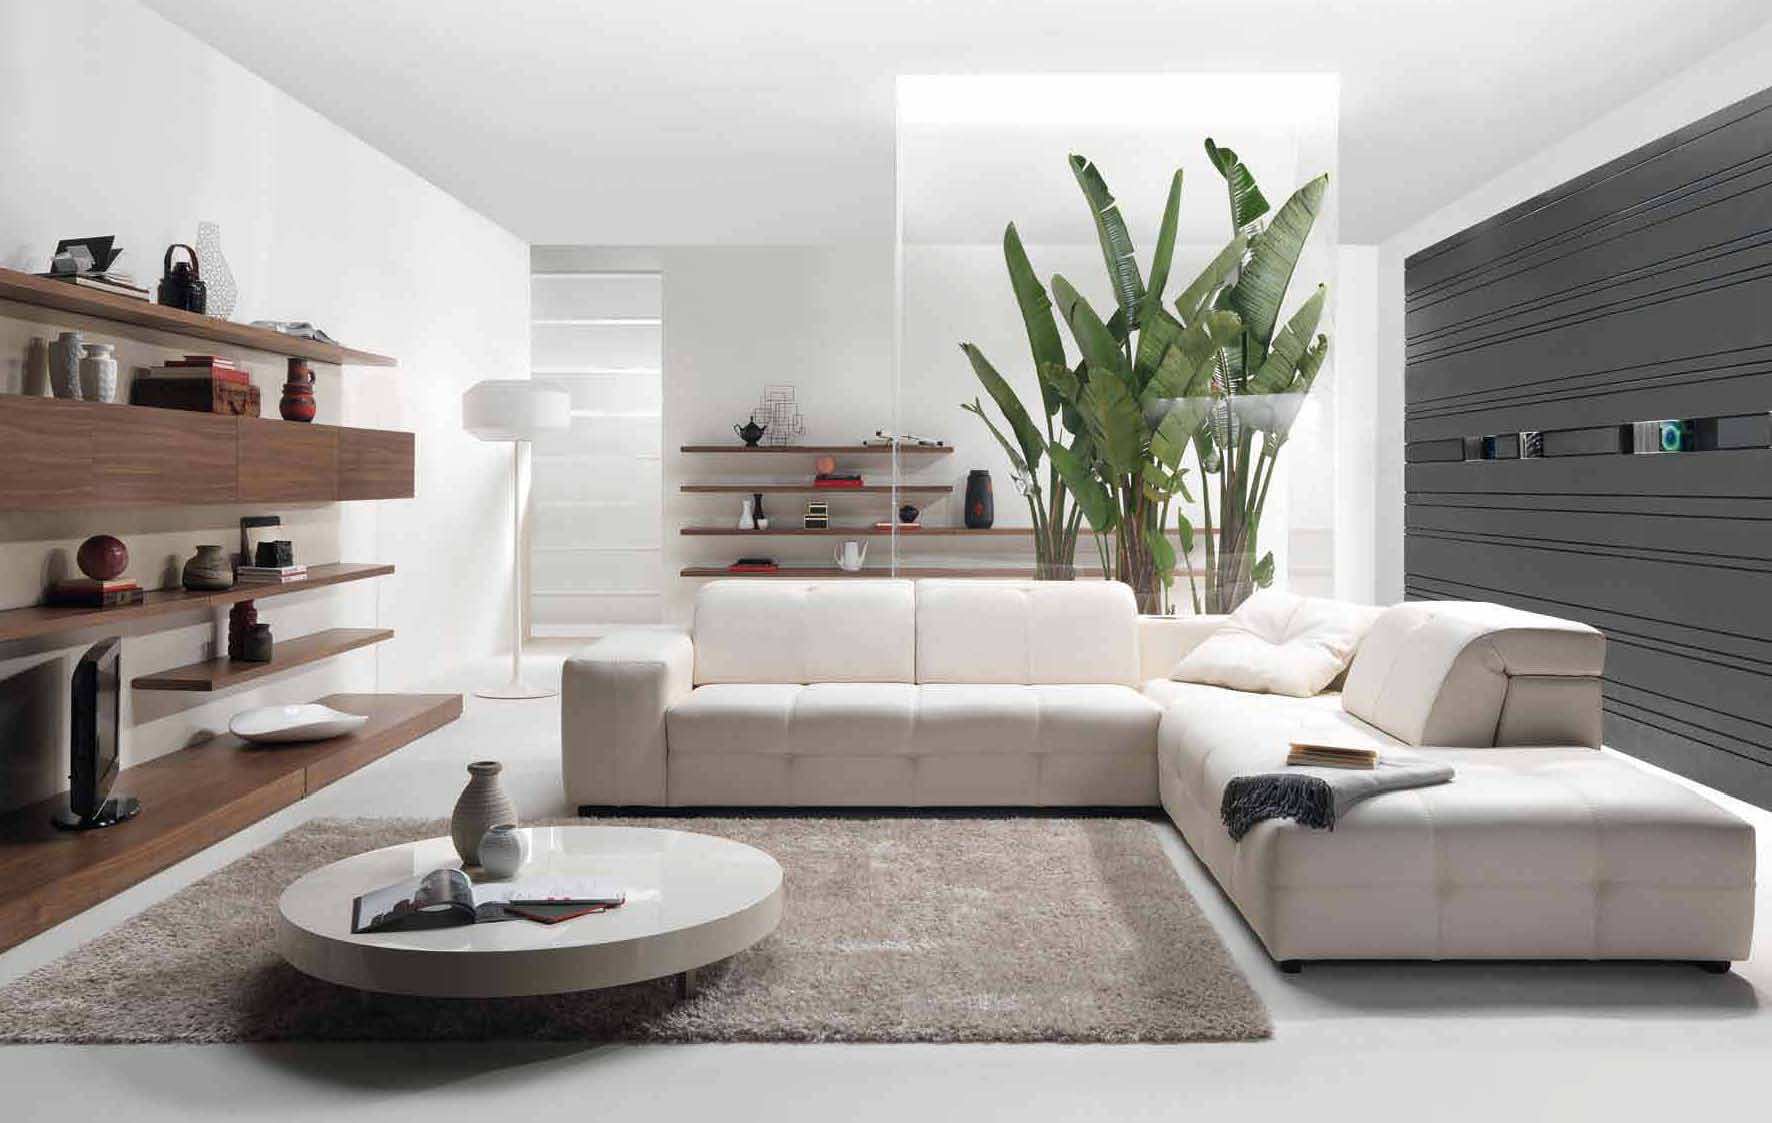 Home Decor - Styles to Make Your Home Appealing!